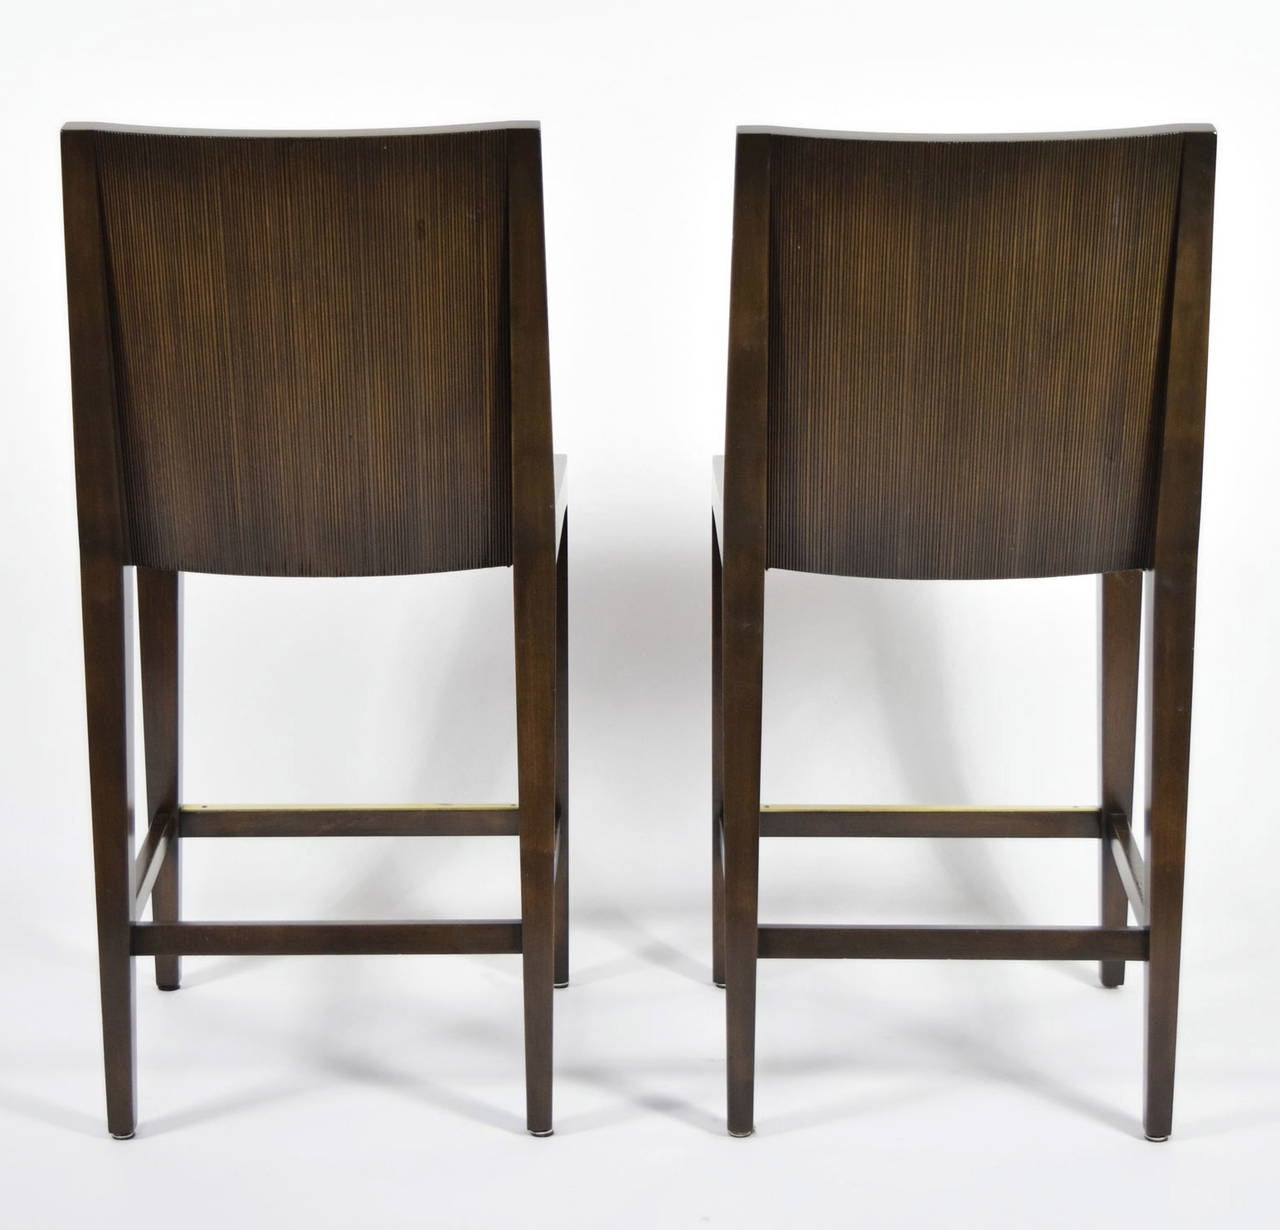 """American Pair of """"Kenya"""" Counterheight Barstools by Axis For Sale"""